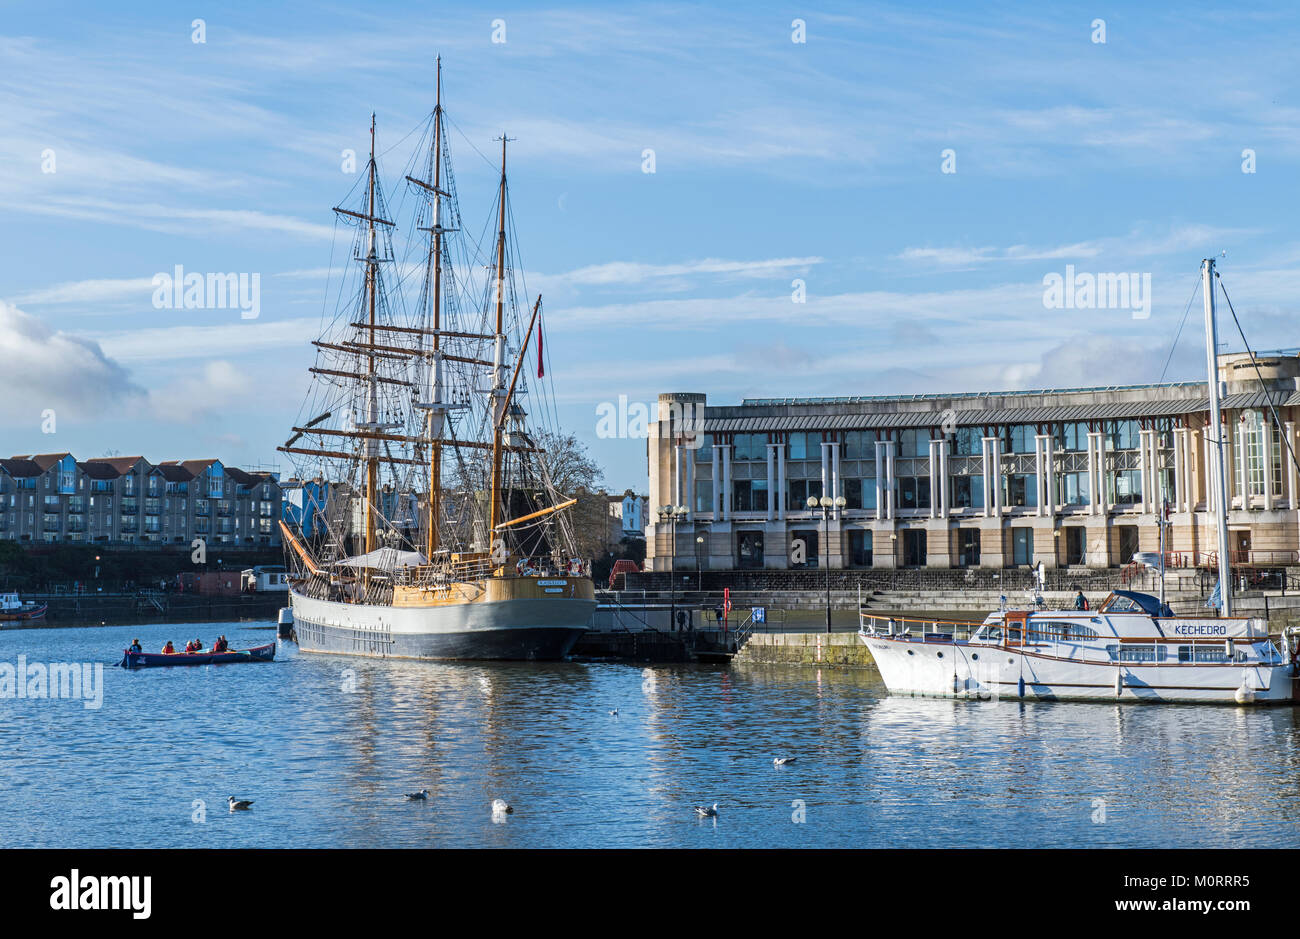 The Three Masted Barque Kaskelot moored in Bristol Harbour - Stock Image